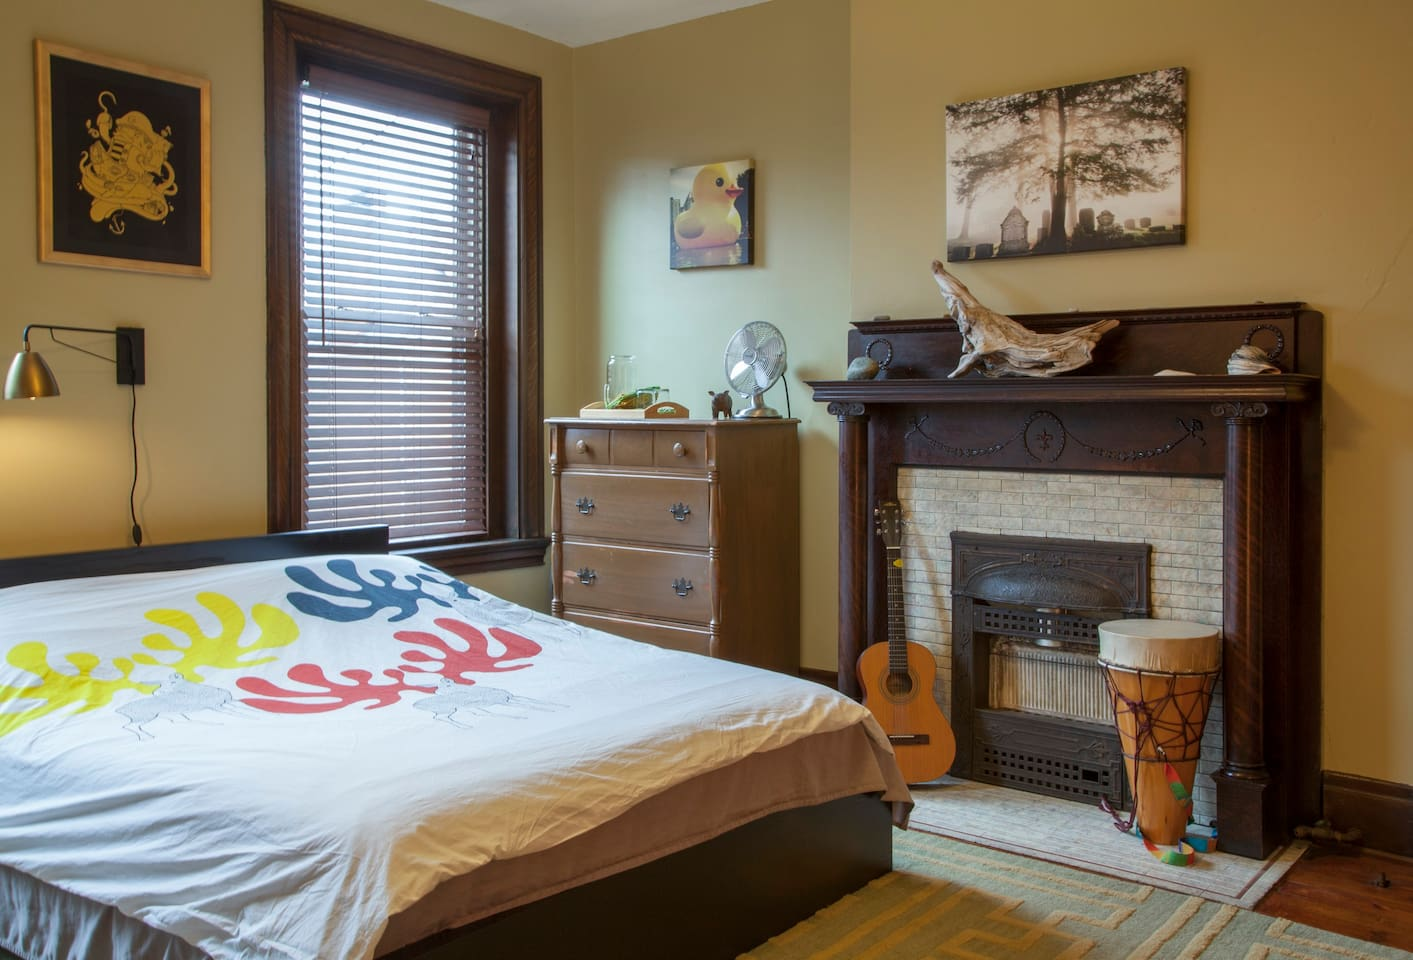 Guest bedroom with local art, recommendations, and the comforts of home